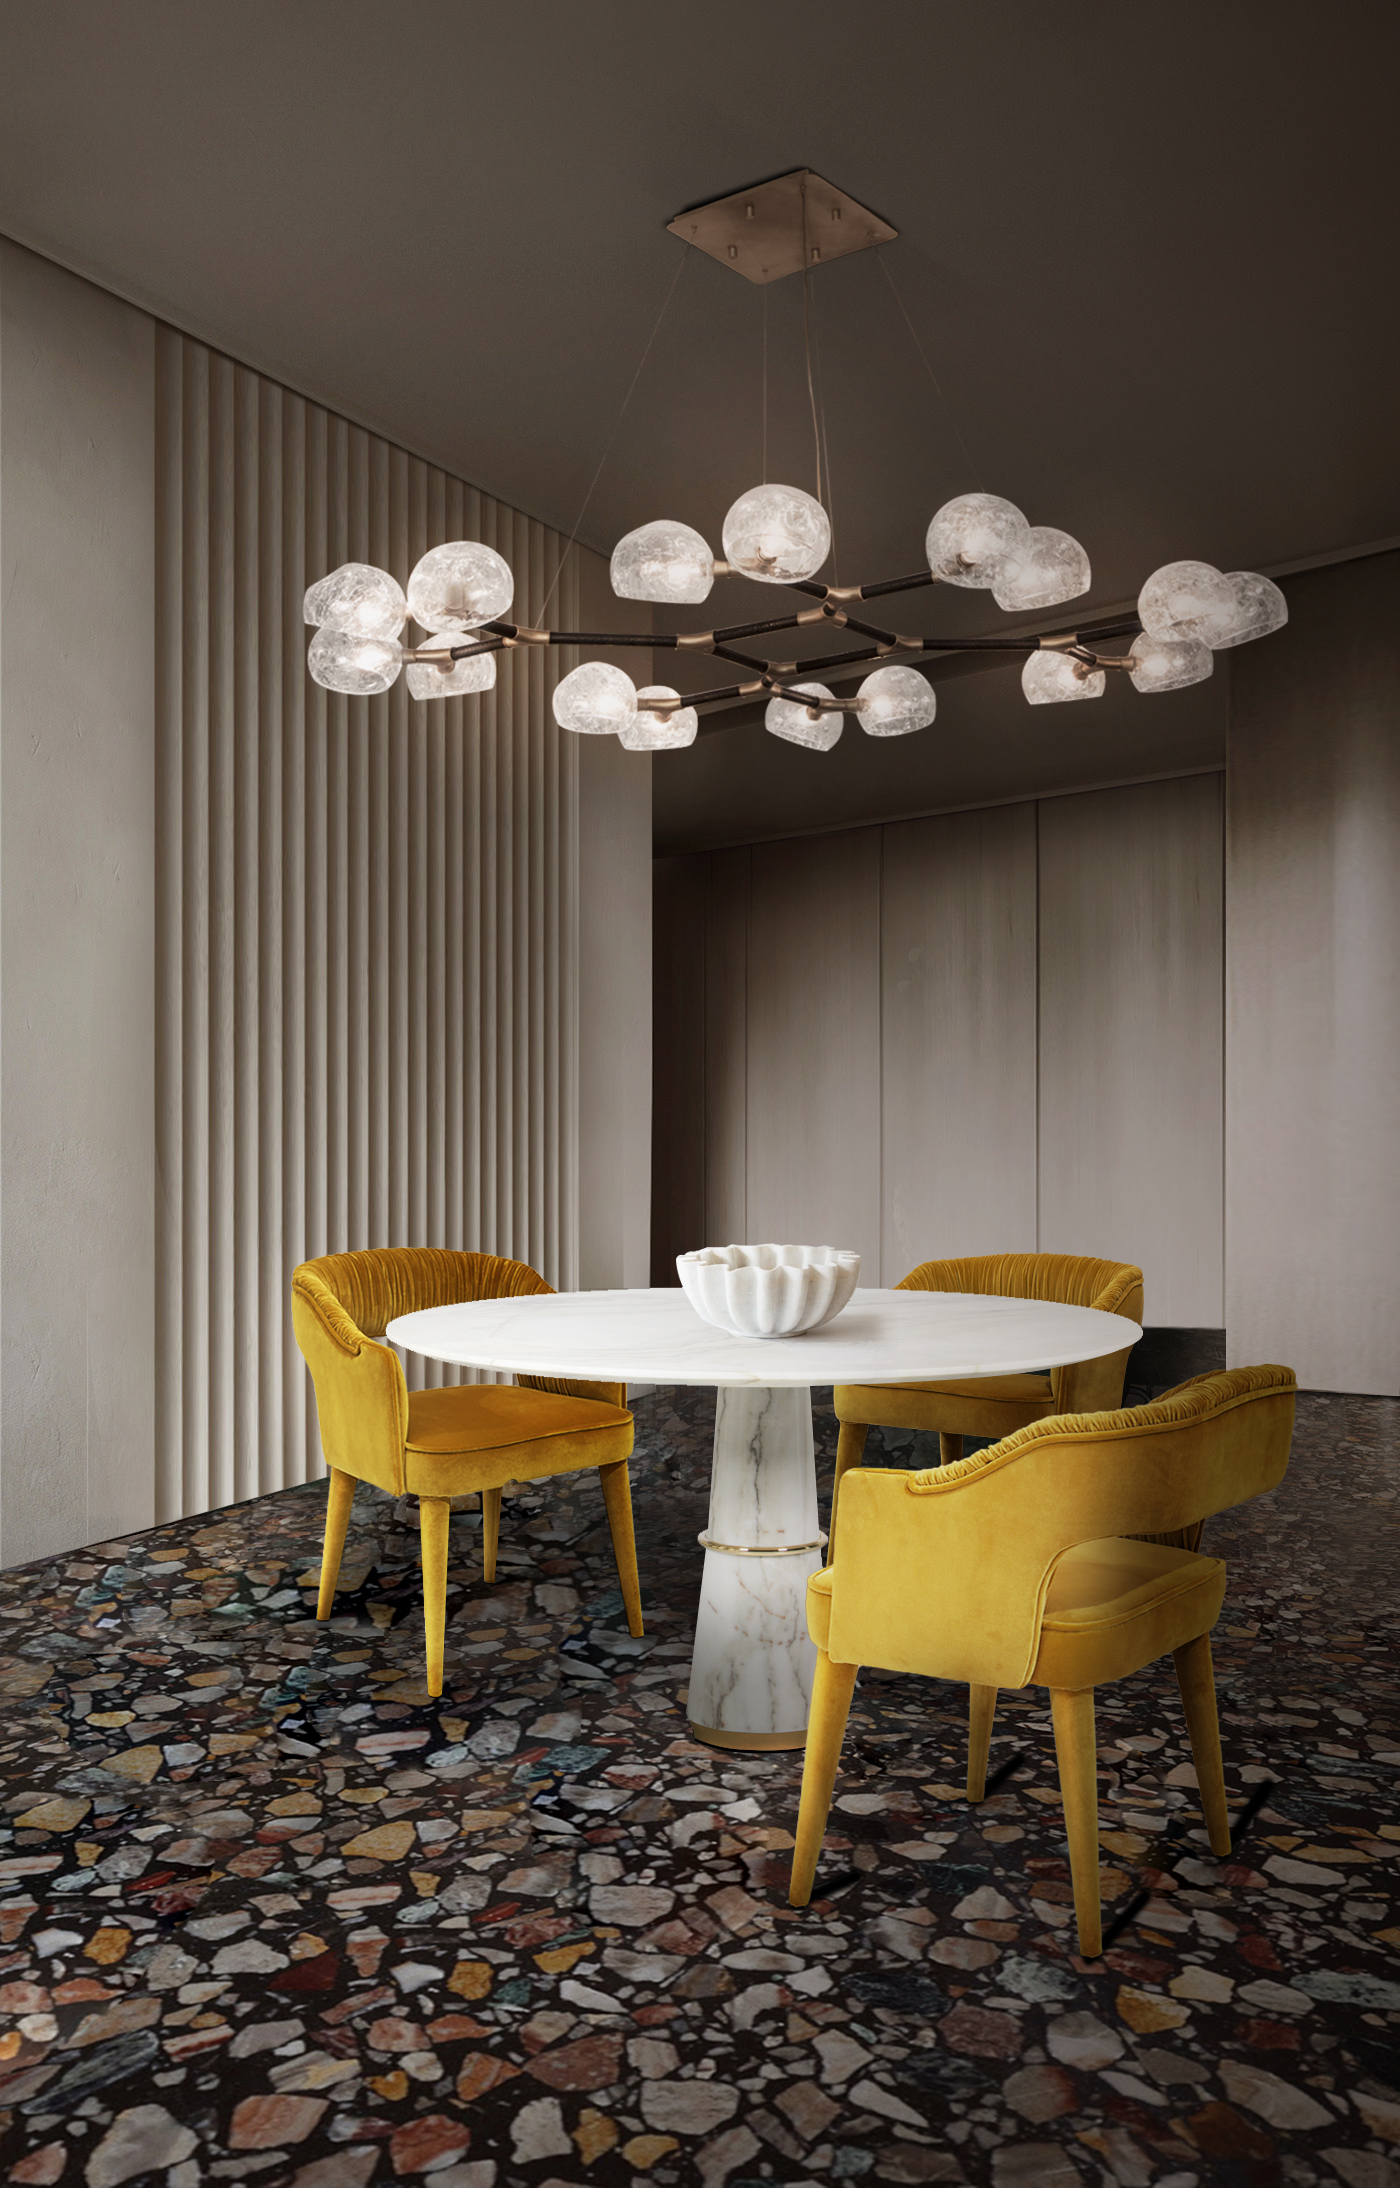 Yellow Chairs: Modern Design That Will Light Up Your House  yellow chairs Yellow Chairs: Modern Design That Will Light Up Your House BB HorusAgra